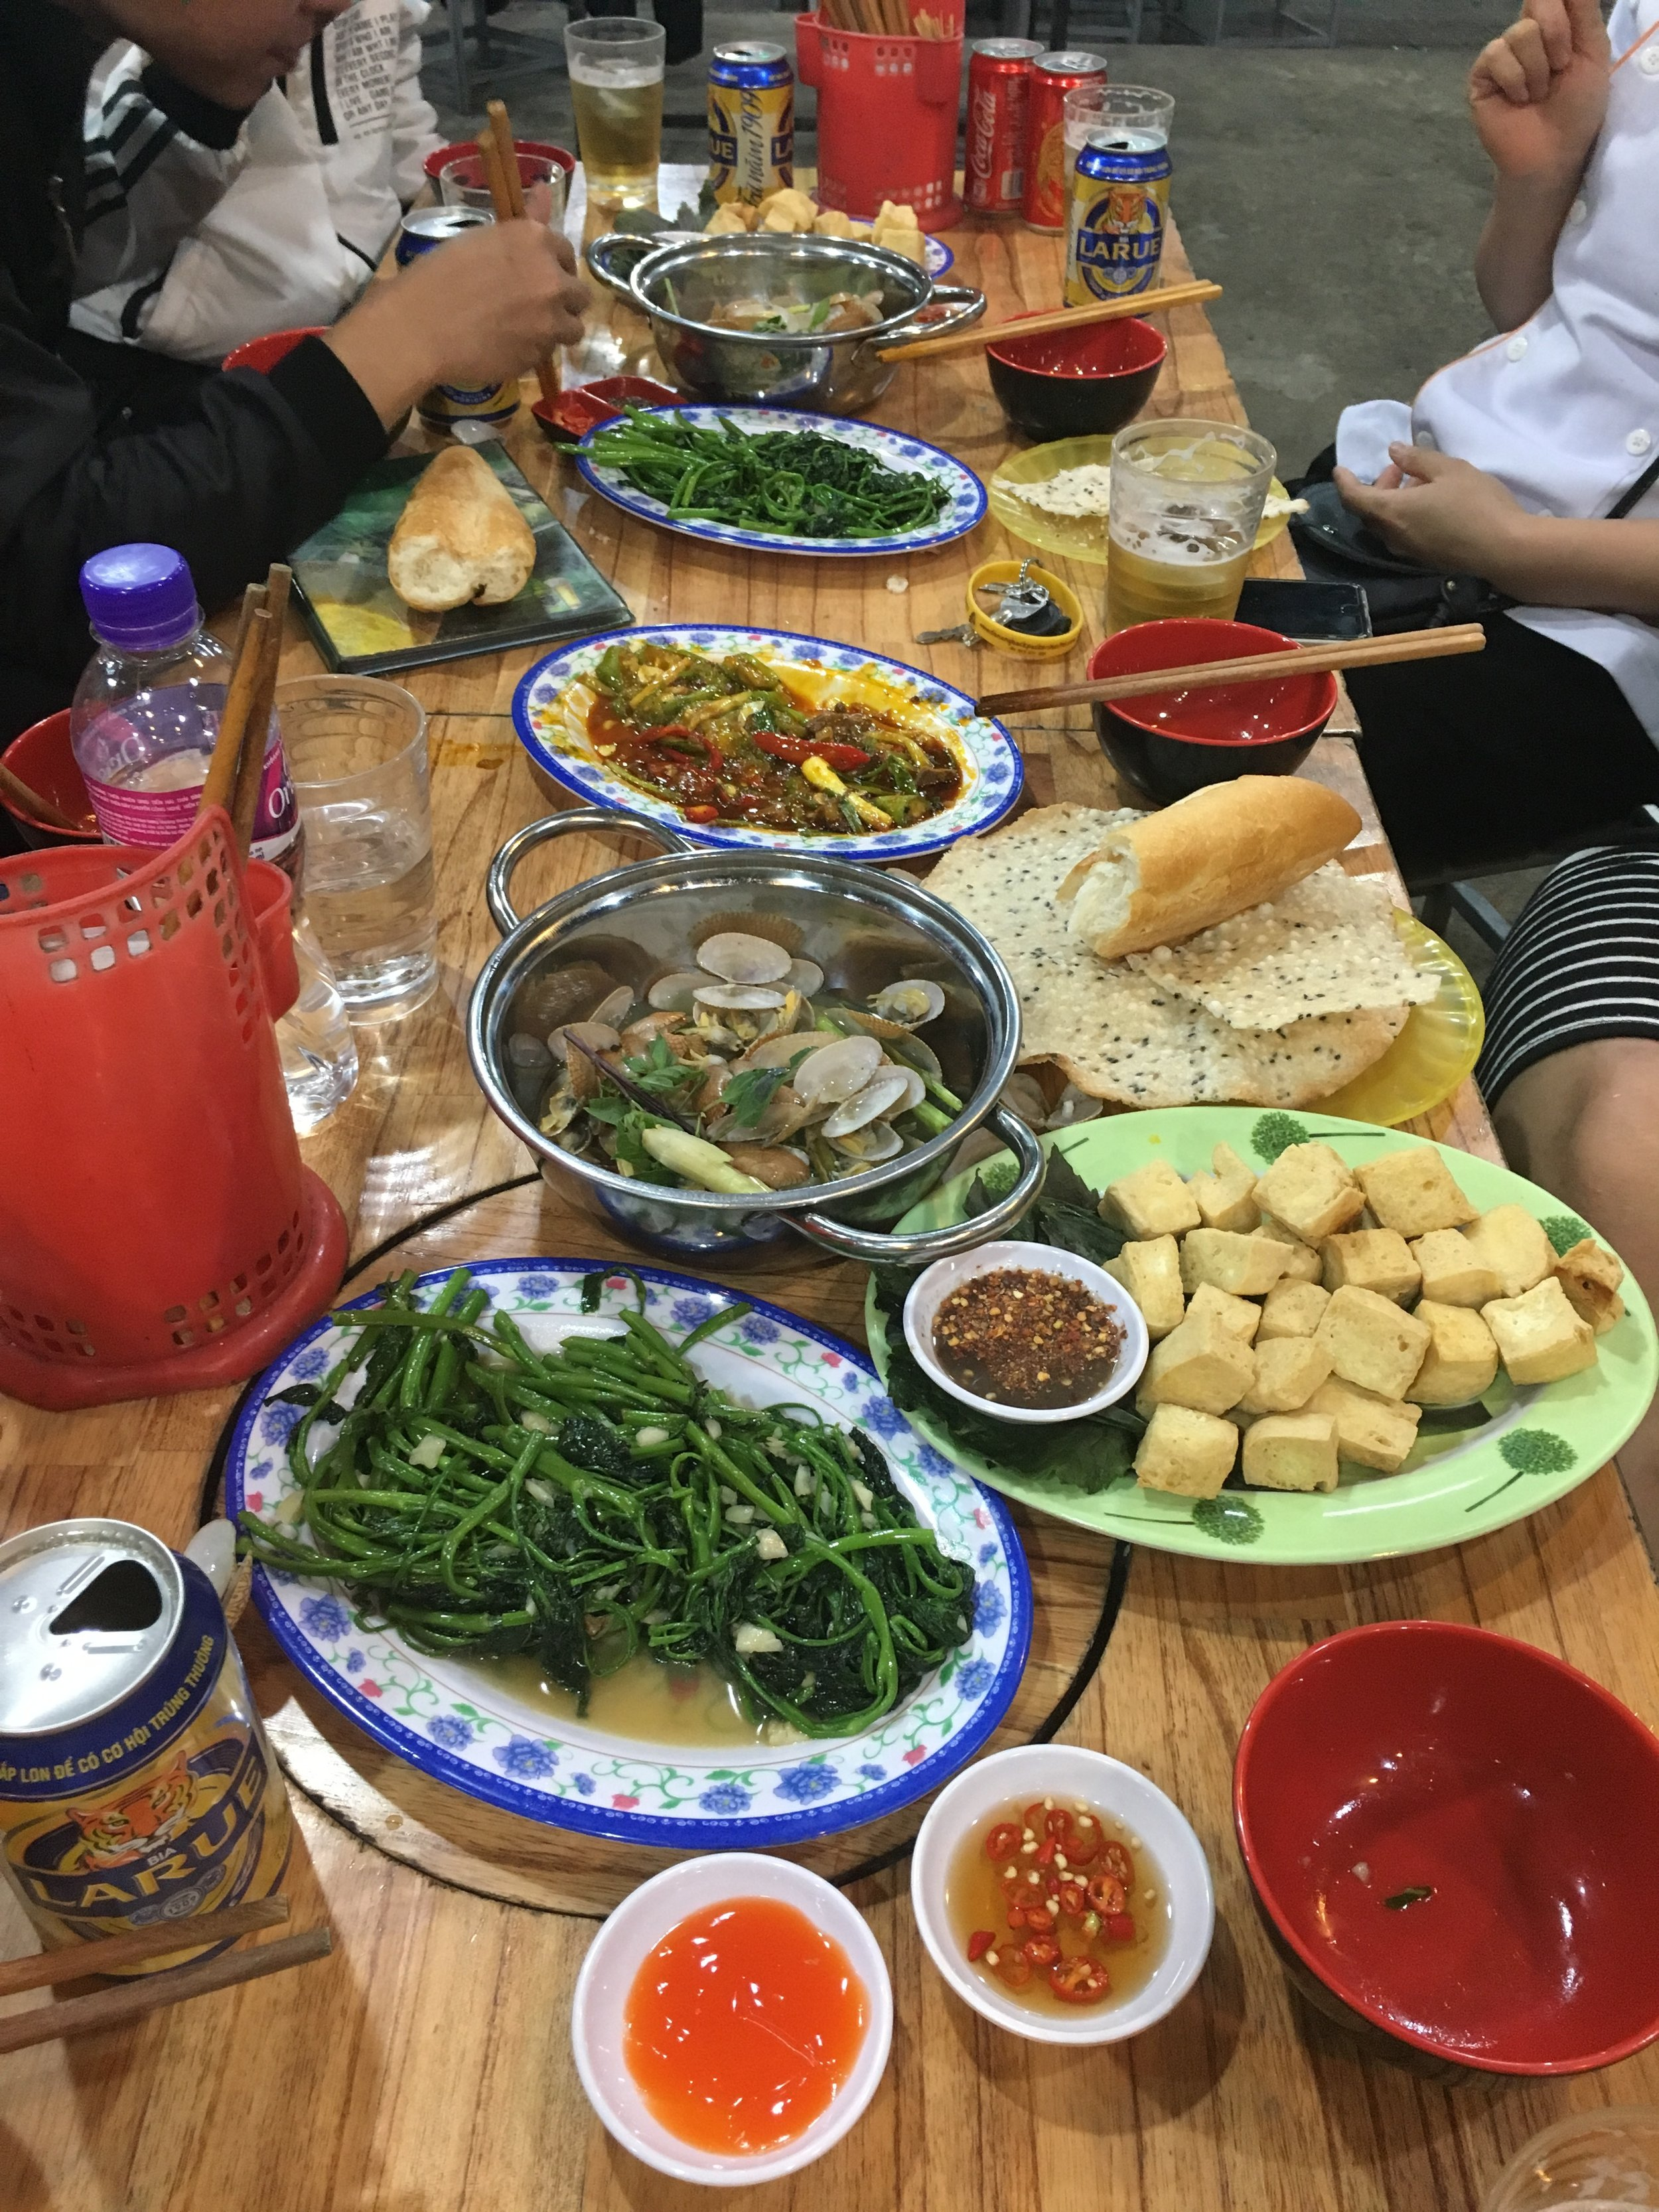 Stir fried morning glory with garlic, Fresh stir fried Tofu , Steamed clams with garlic and lemon grass, Chicken livers and chicken hearts with green melon, chilli, spring onion